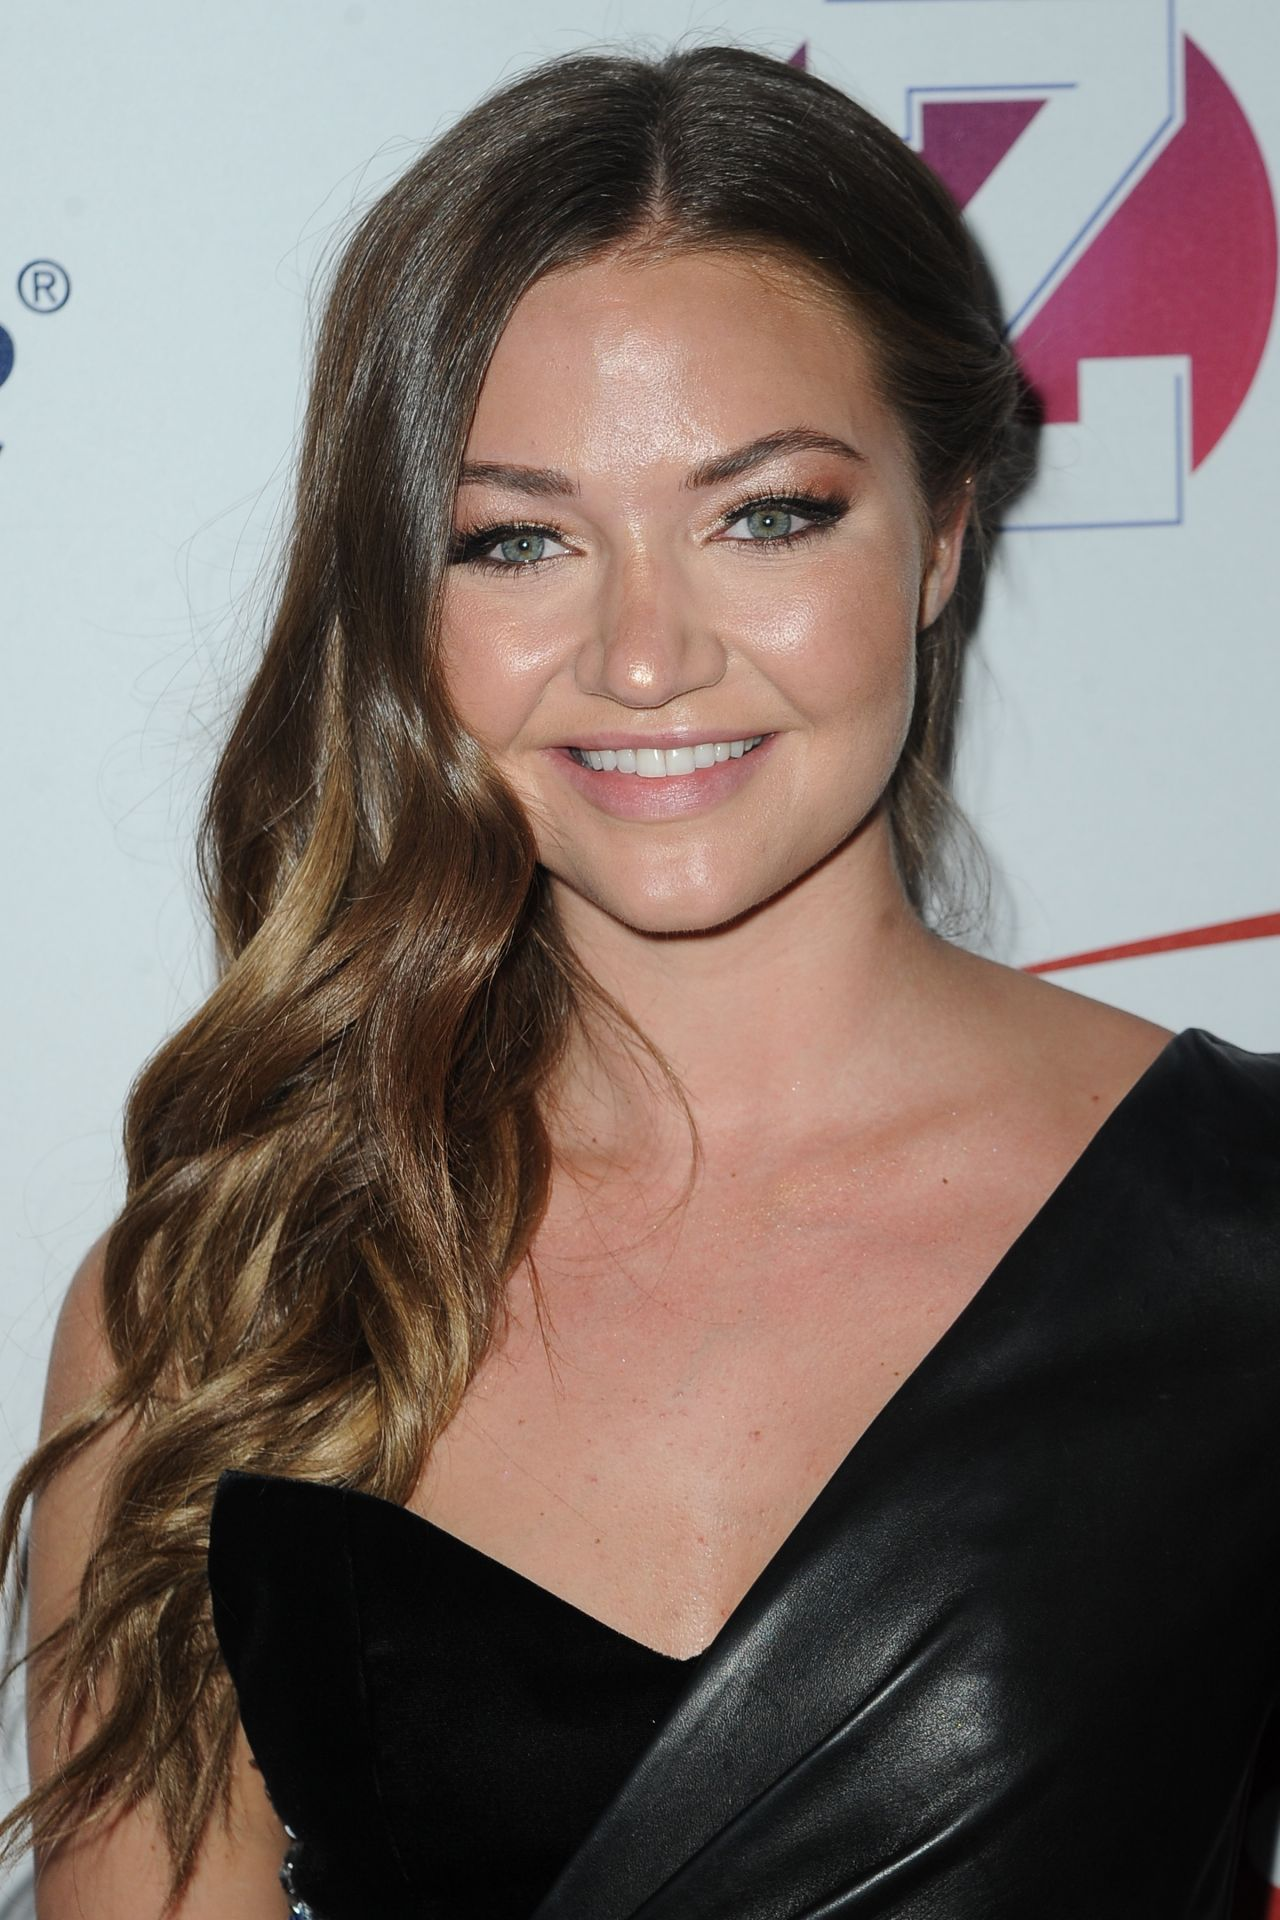 Erika Costell Z100s Jingle Ball 2017 In NYC